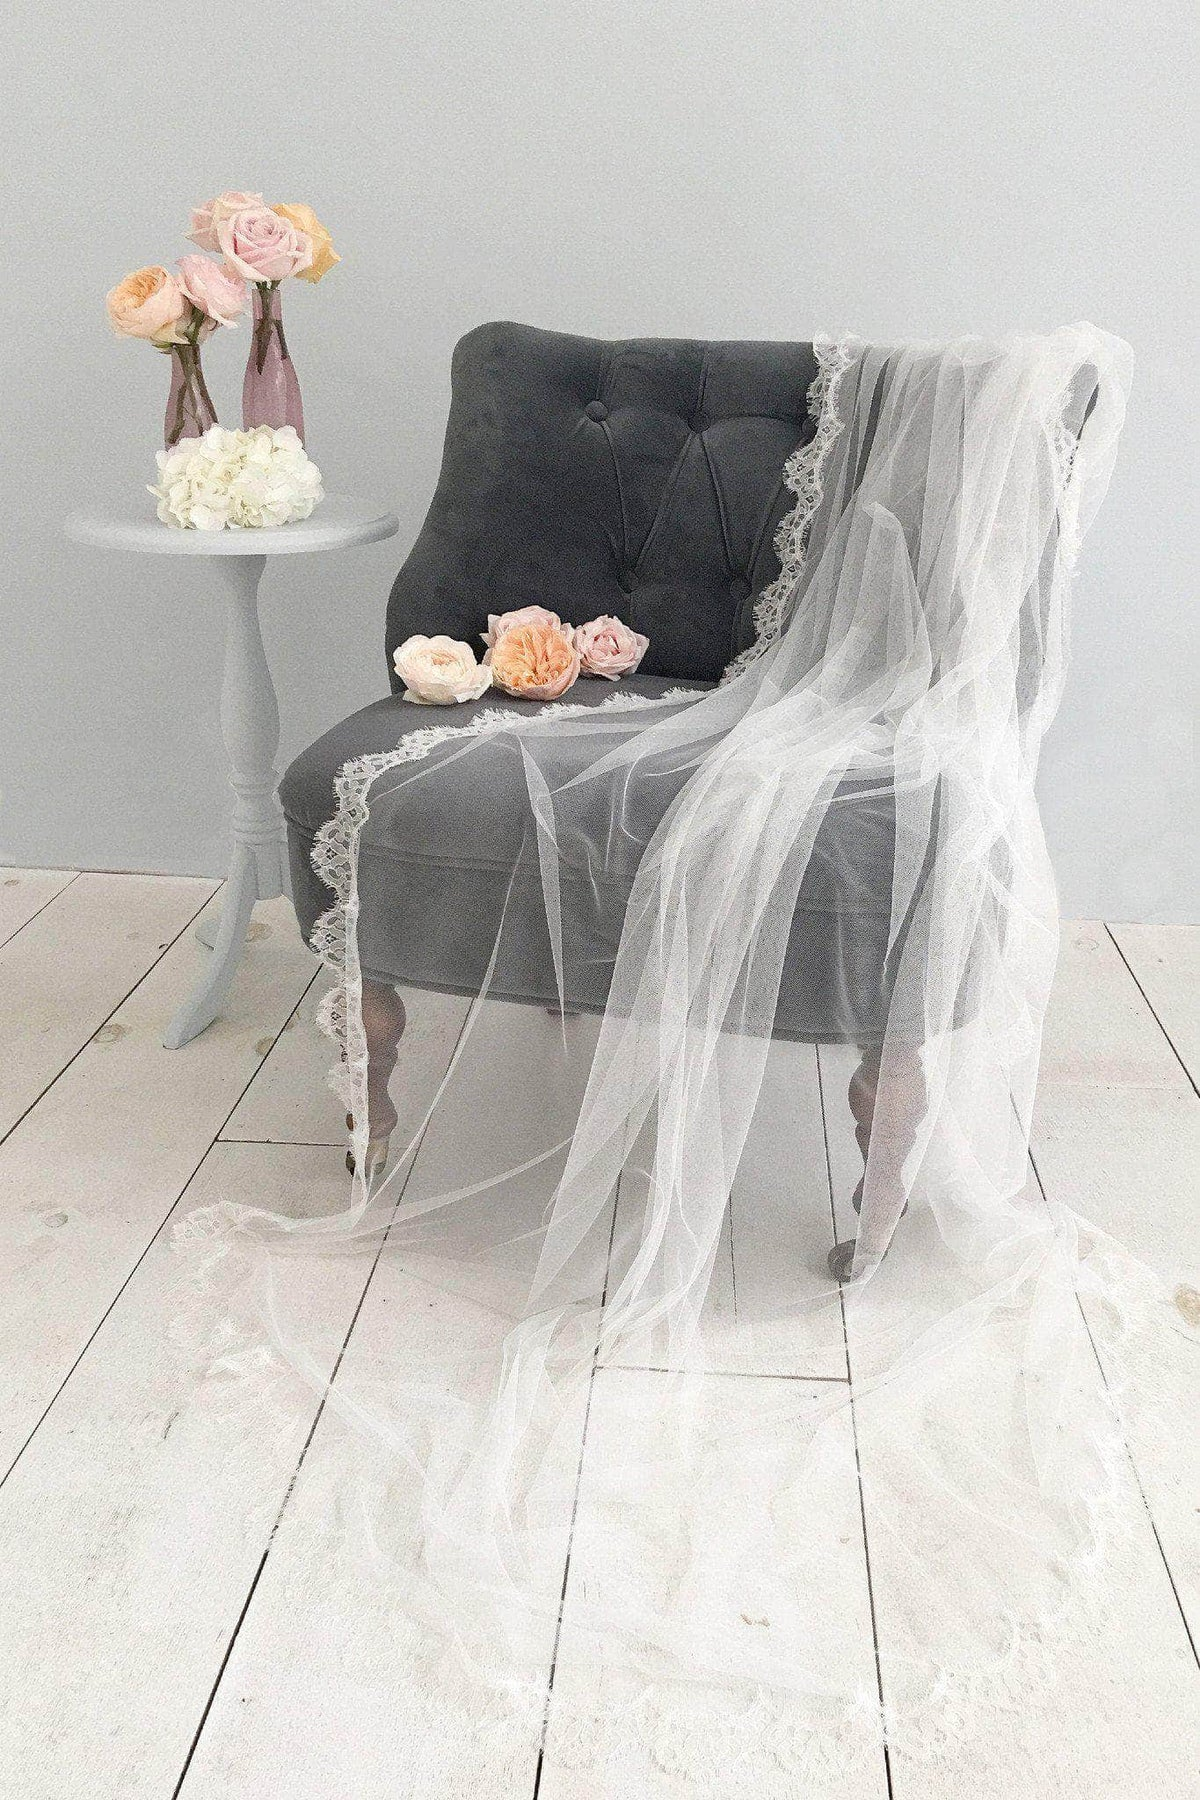 Wedding Veil Silk style wedding veil with french eyelash lace trim- 'Mia'